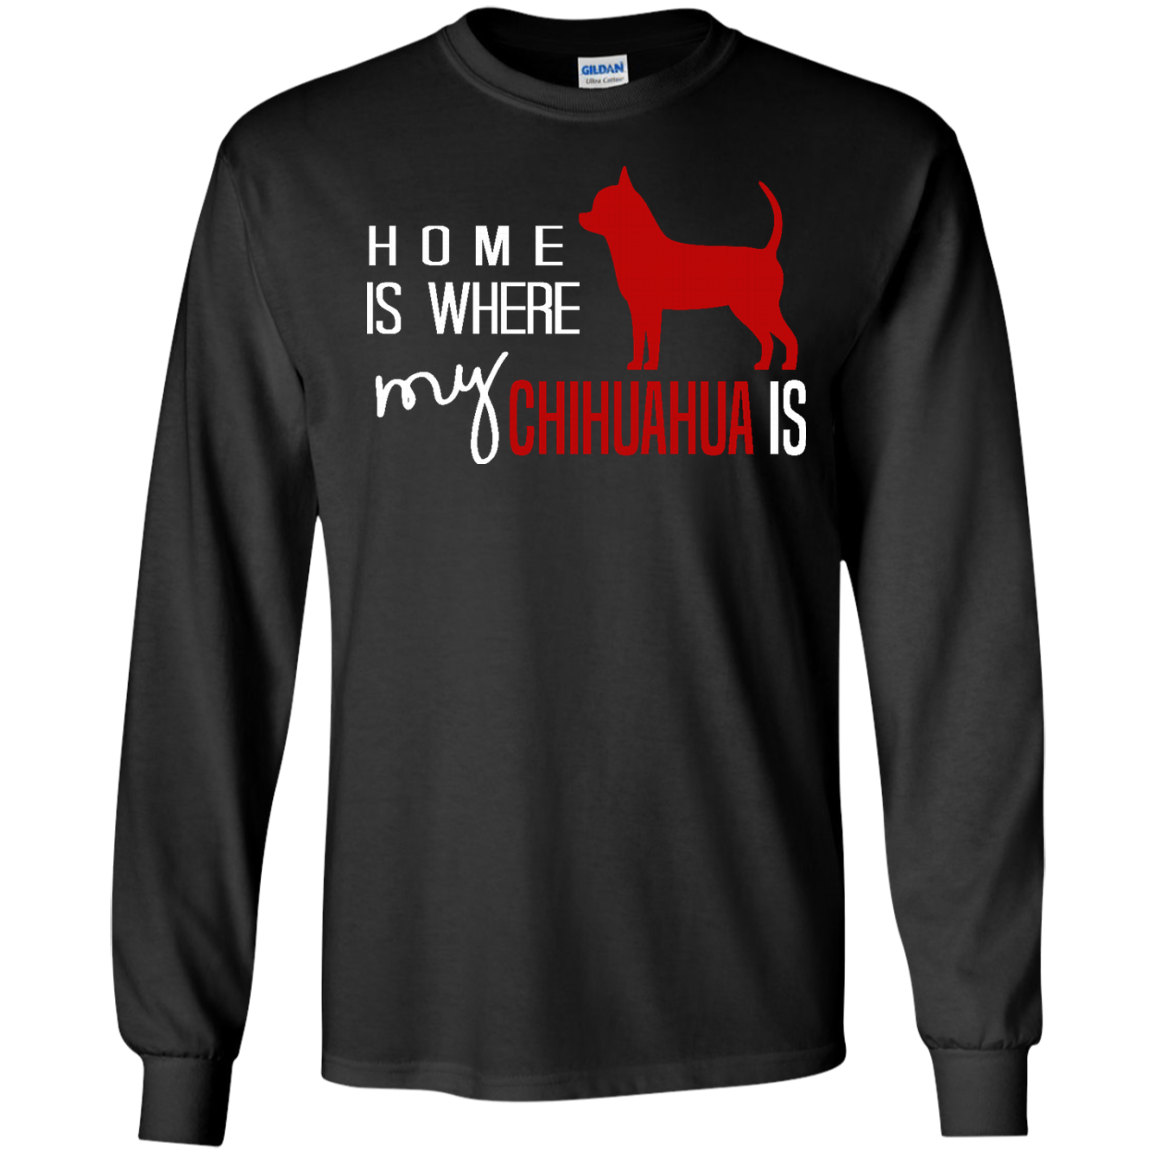 Chihuahua Dog Long Sleeve T shirt Home is Where My Chihuahua Is like as a gift for who loves Chihuahua  yourself  friends on birthday  christmas or Occasions